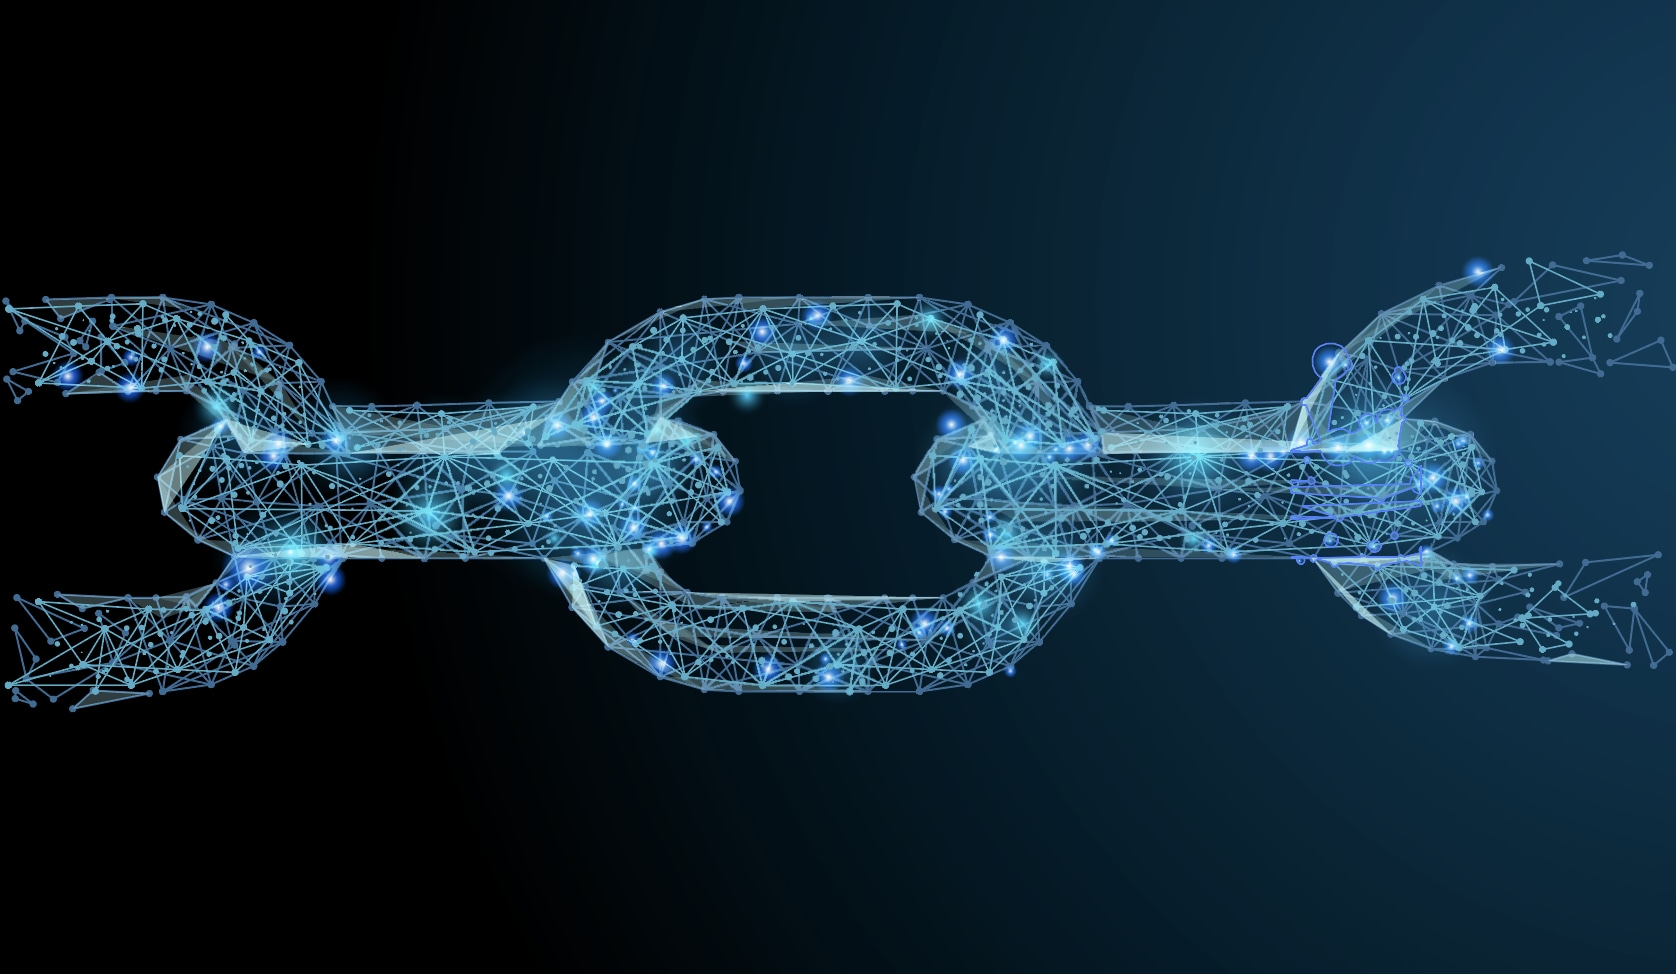 Stylized image of connected chain links